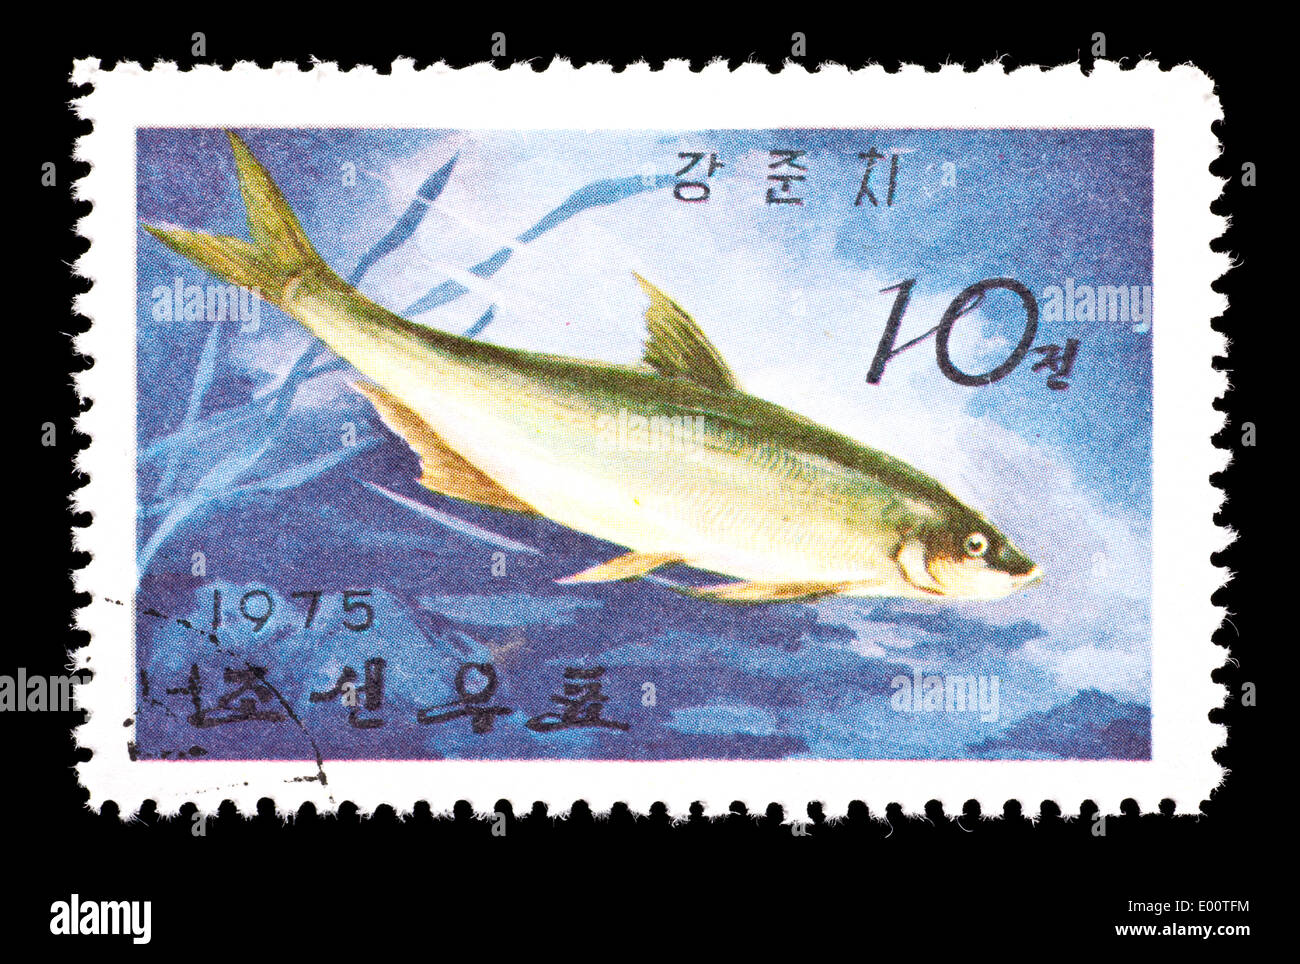 Freshwater fish korea - Postage Stamp From North Korea Depicting A Freshwater White Fish